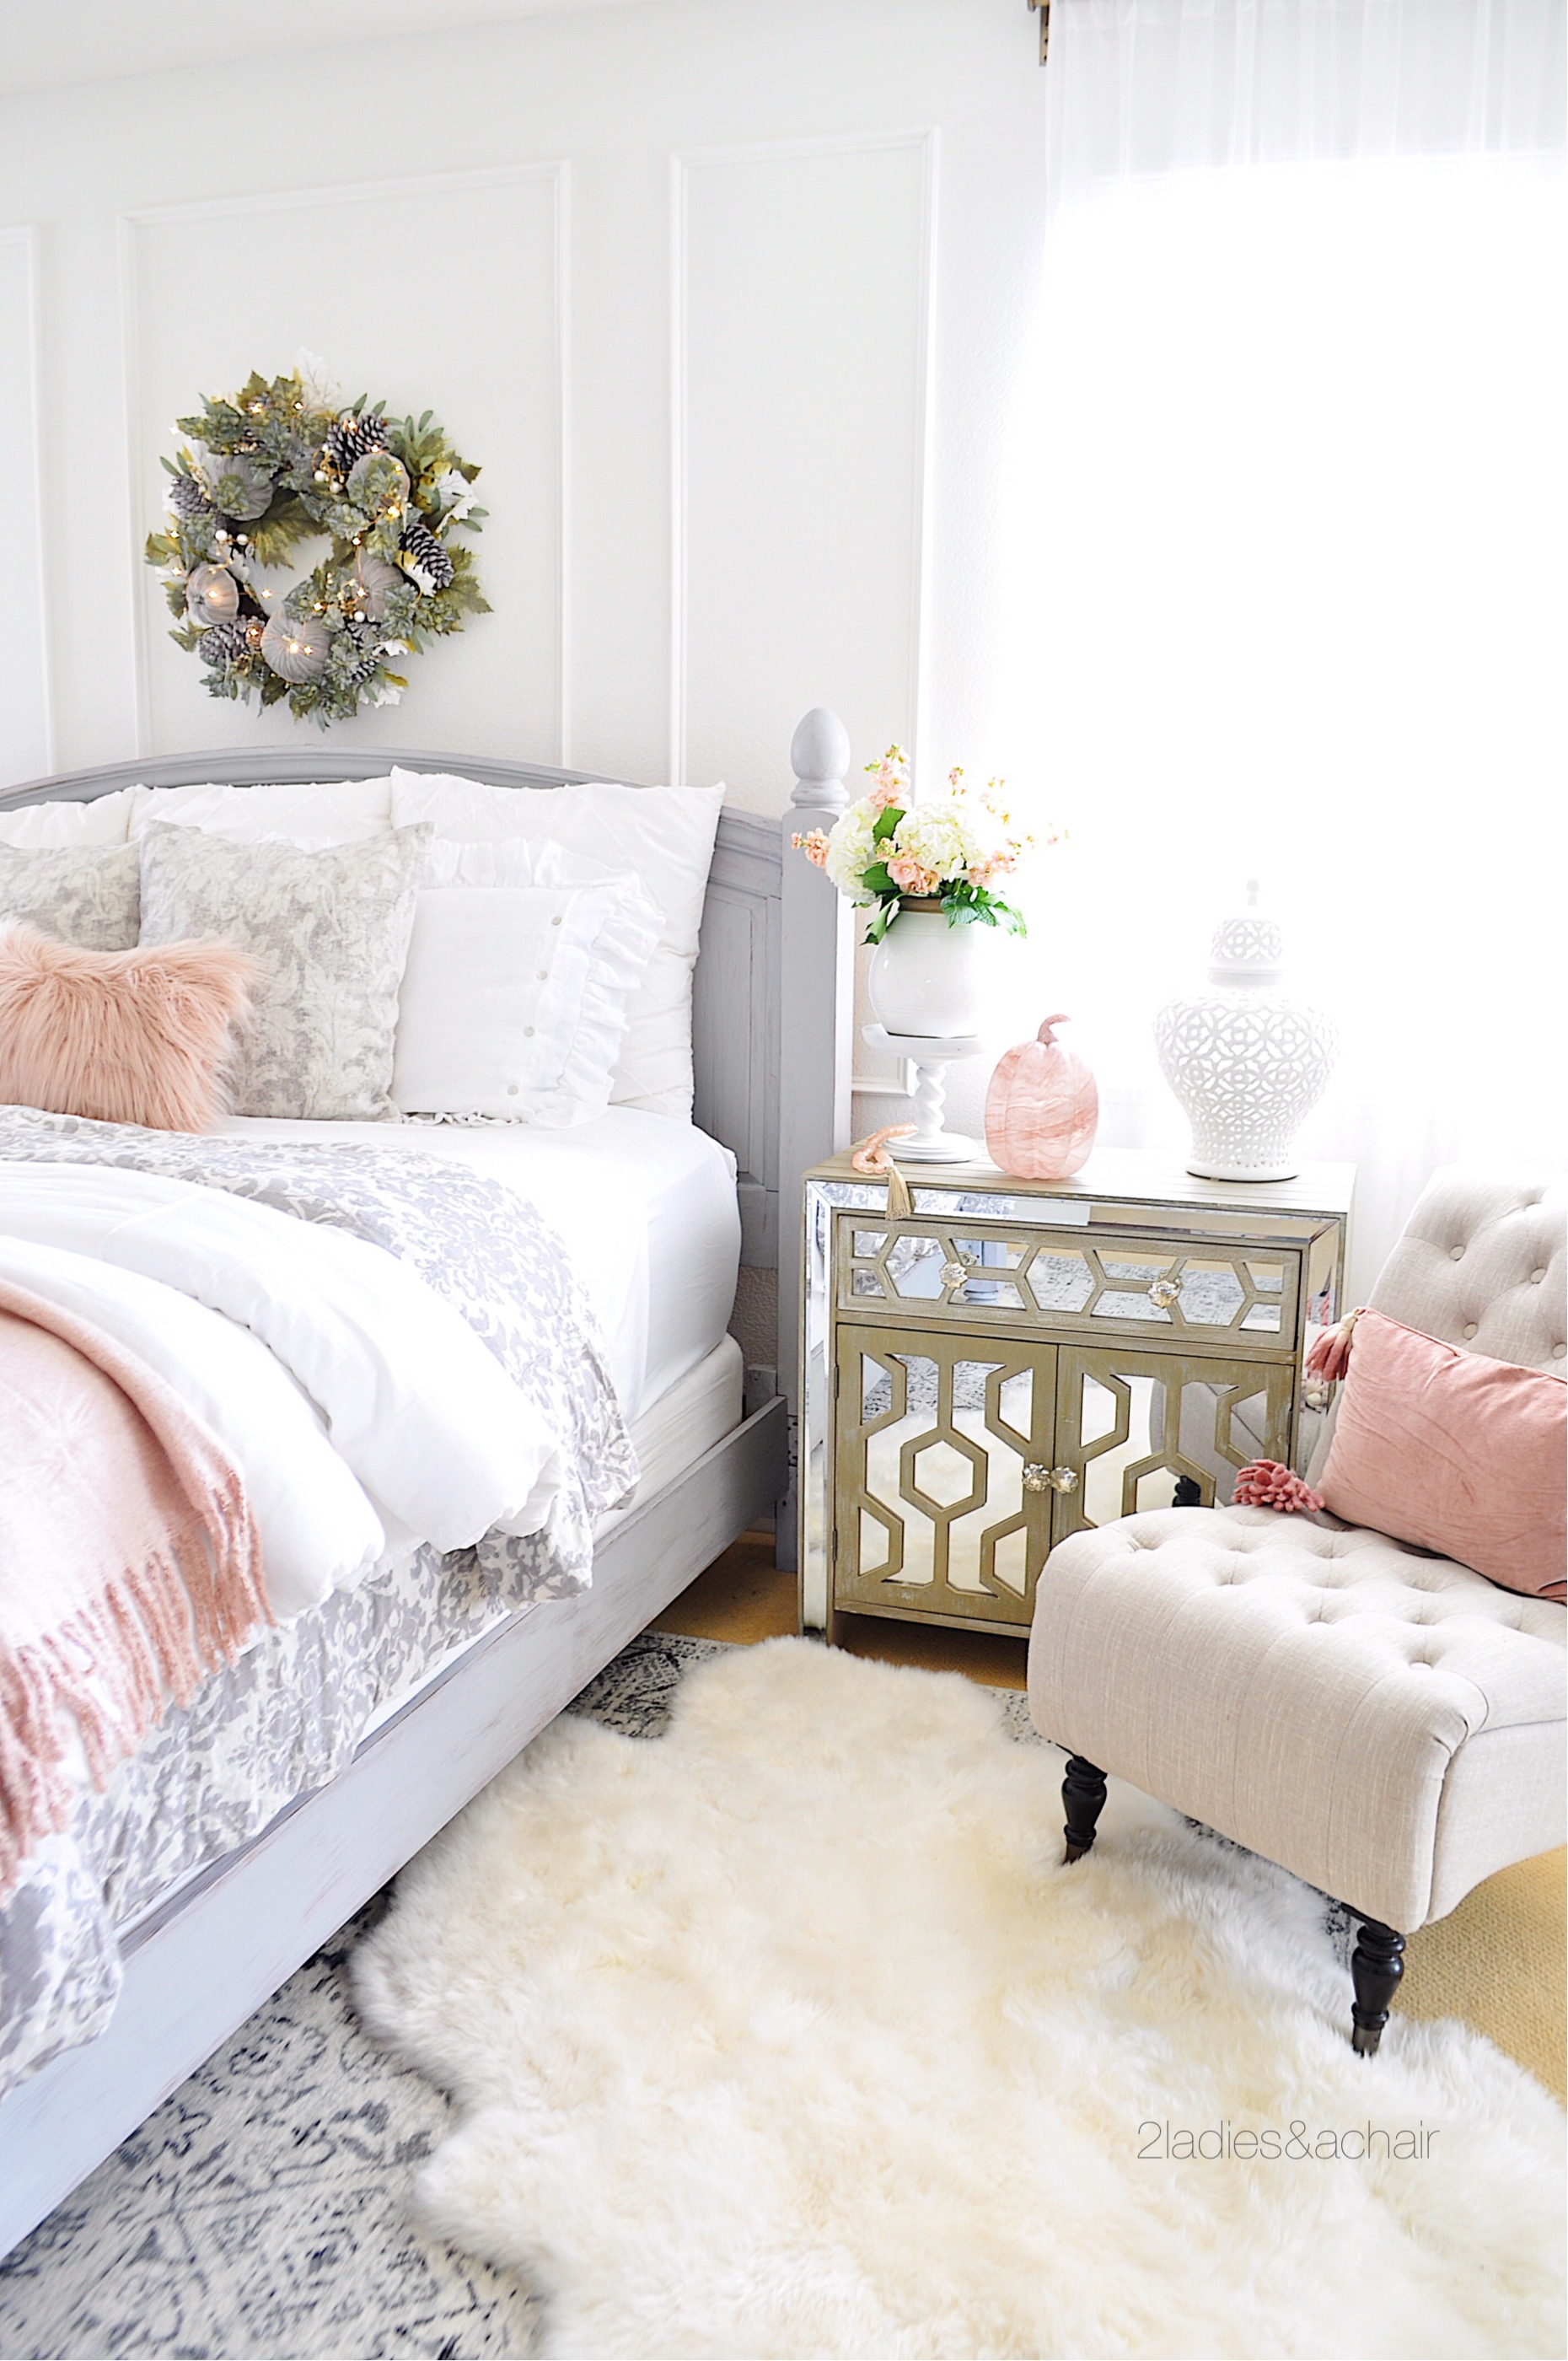 Simple Fall Bedroom Decor 2 Ladies A Chair